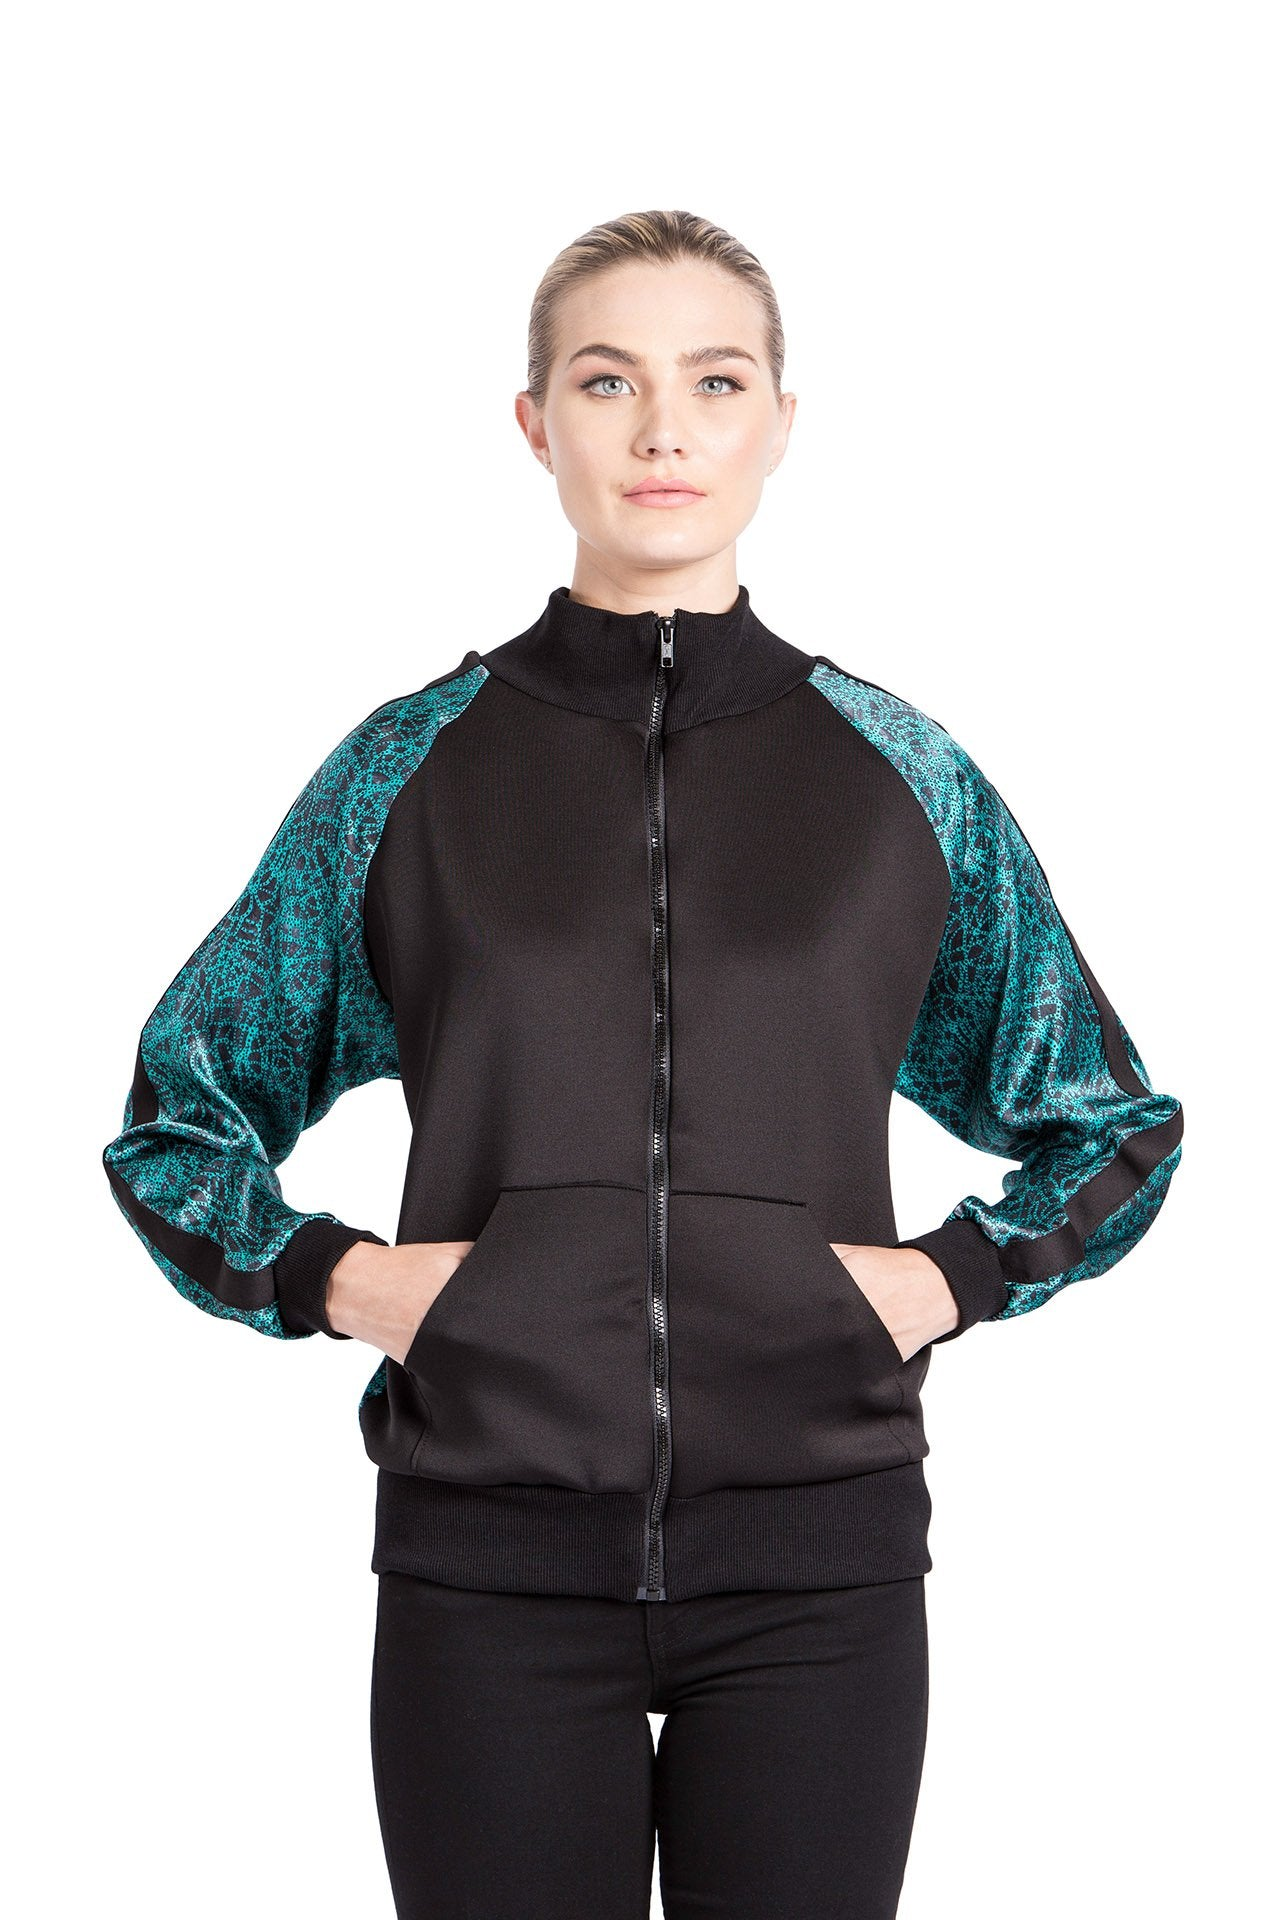 Allover Bomber Jacket - Green Knot Print Jackets - artTECA